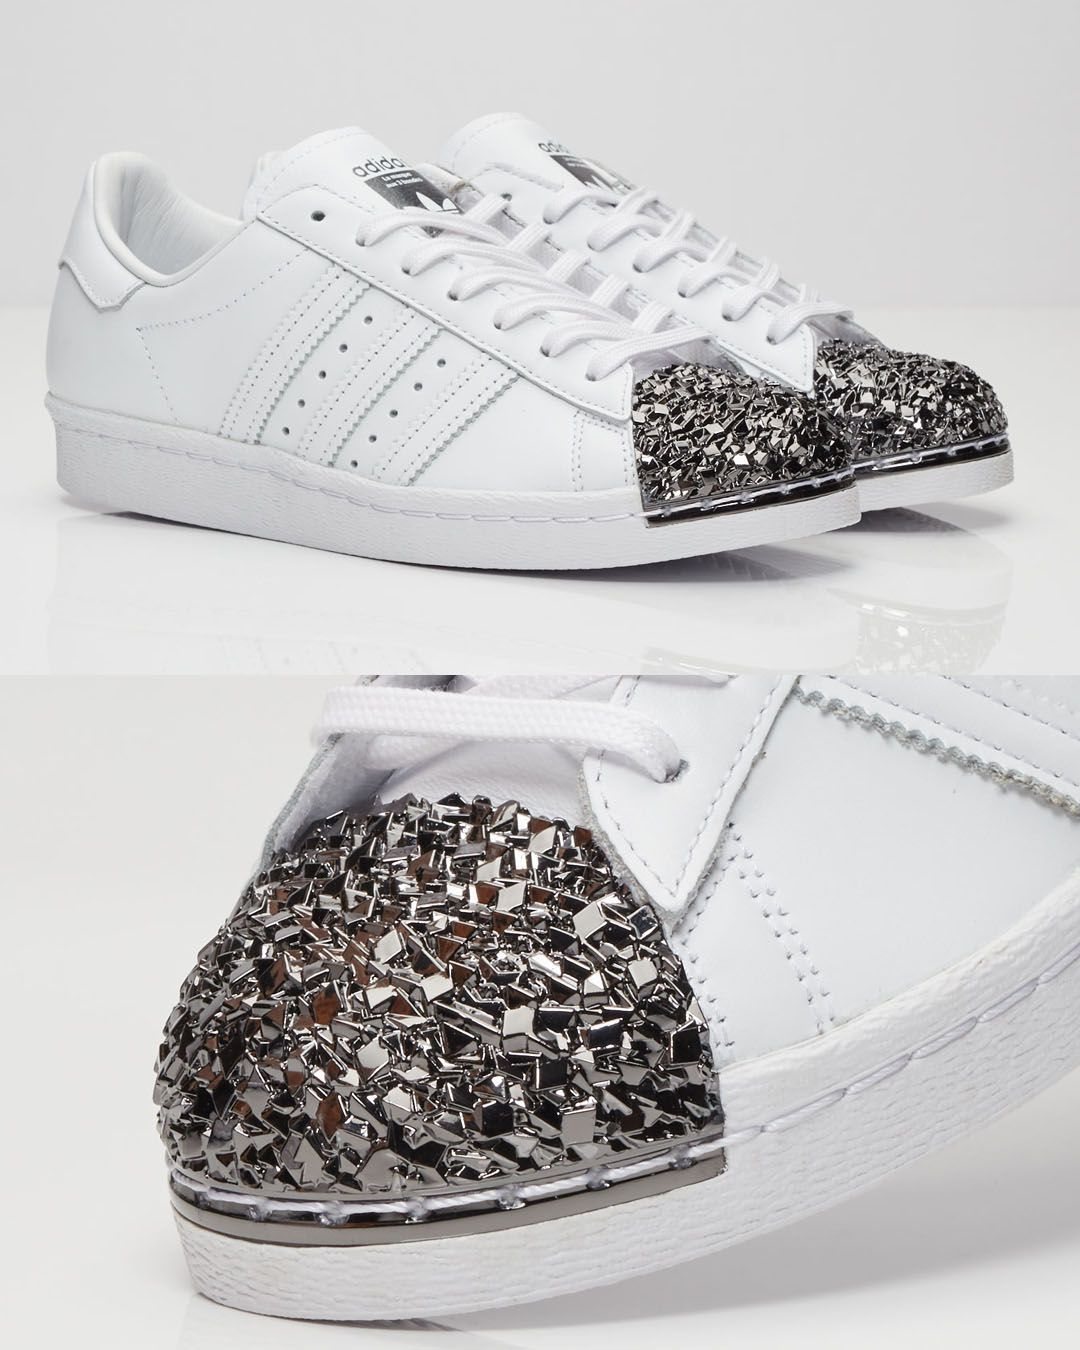 new concept 5cae0 57fa8 adiads superstar metal toe S76532 WOMENS ATHLETIC FASHION SNEAKERS  amzn.to 2kR9jl3